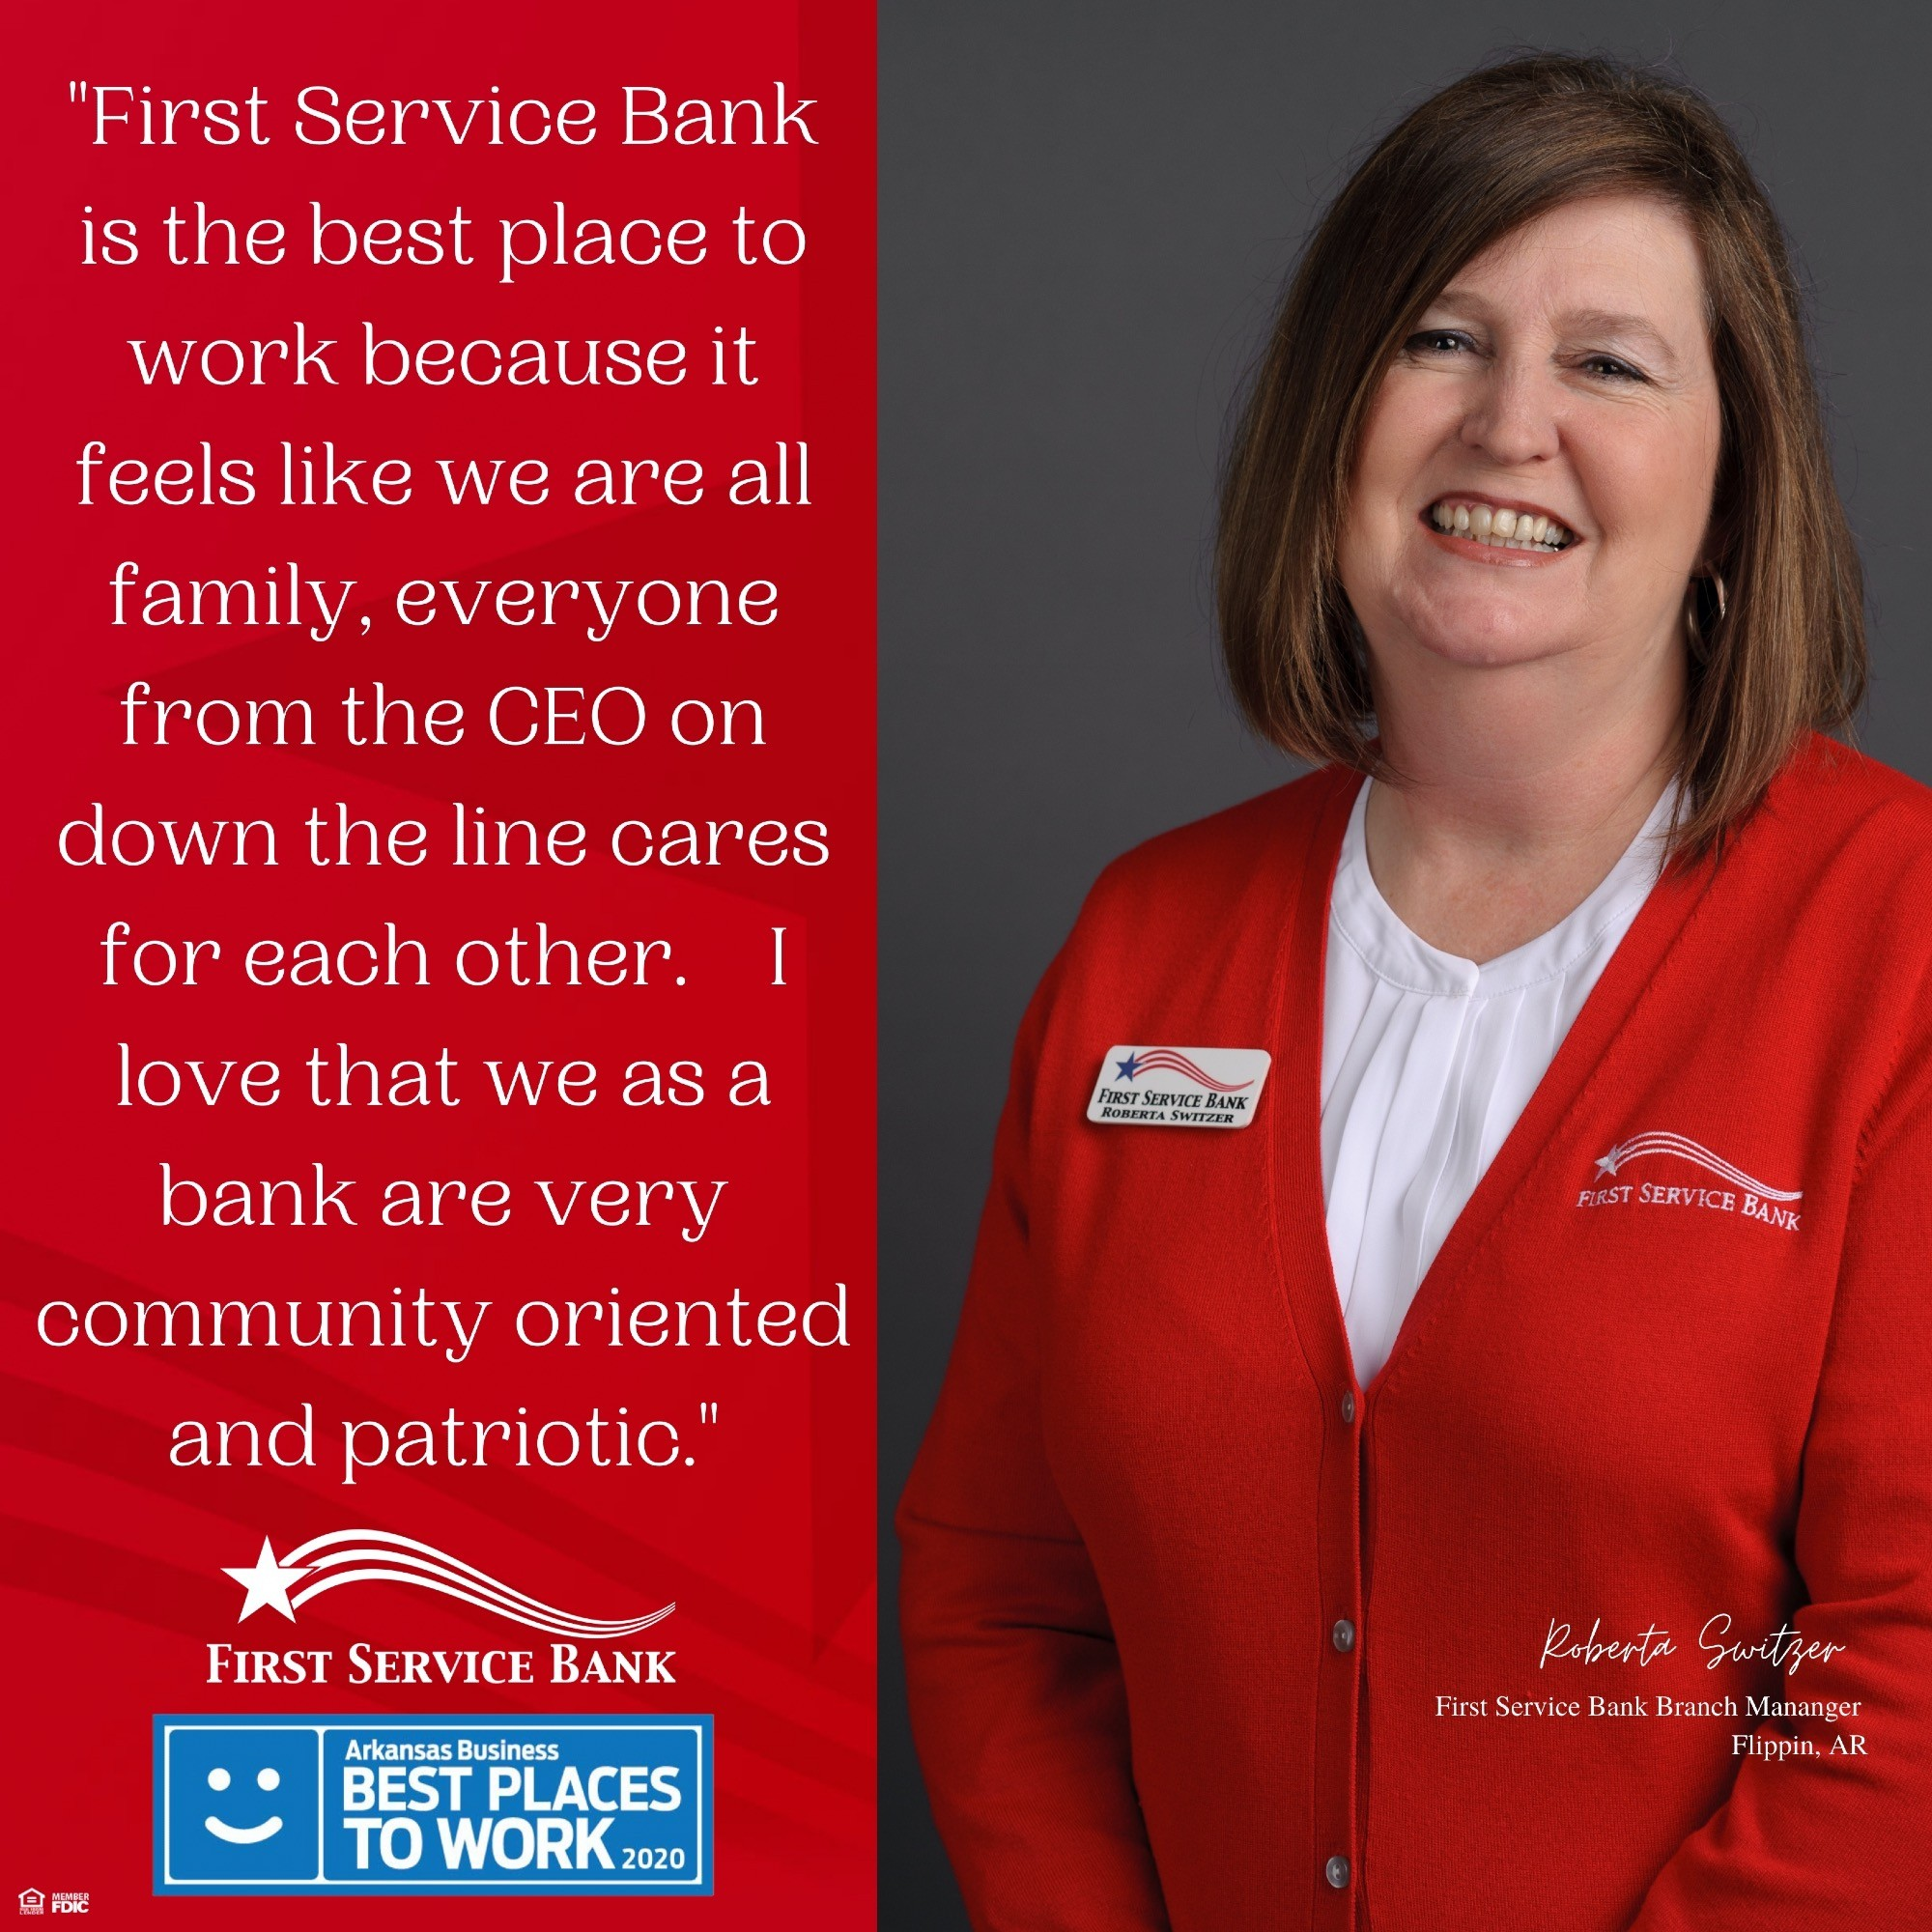 I love that we as a bank are very community oriented and patriotic.